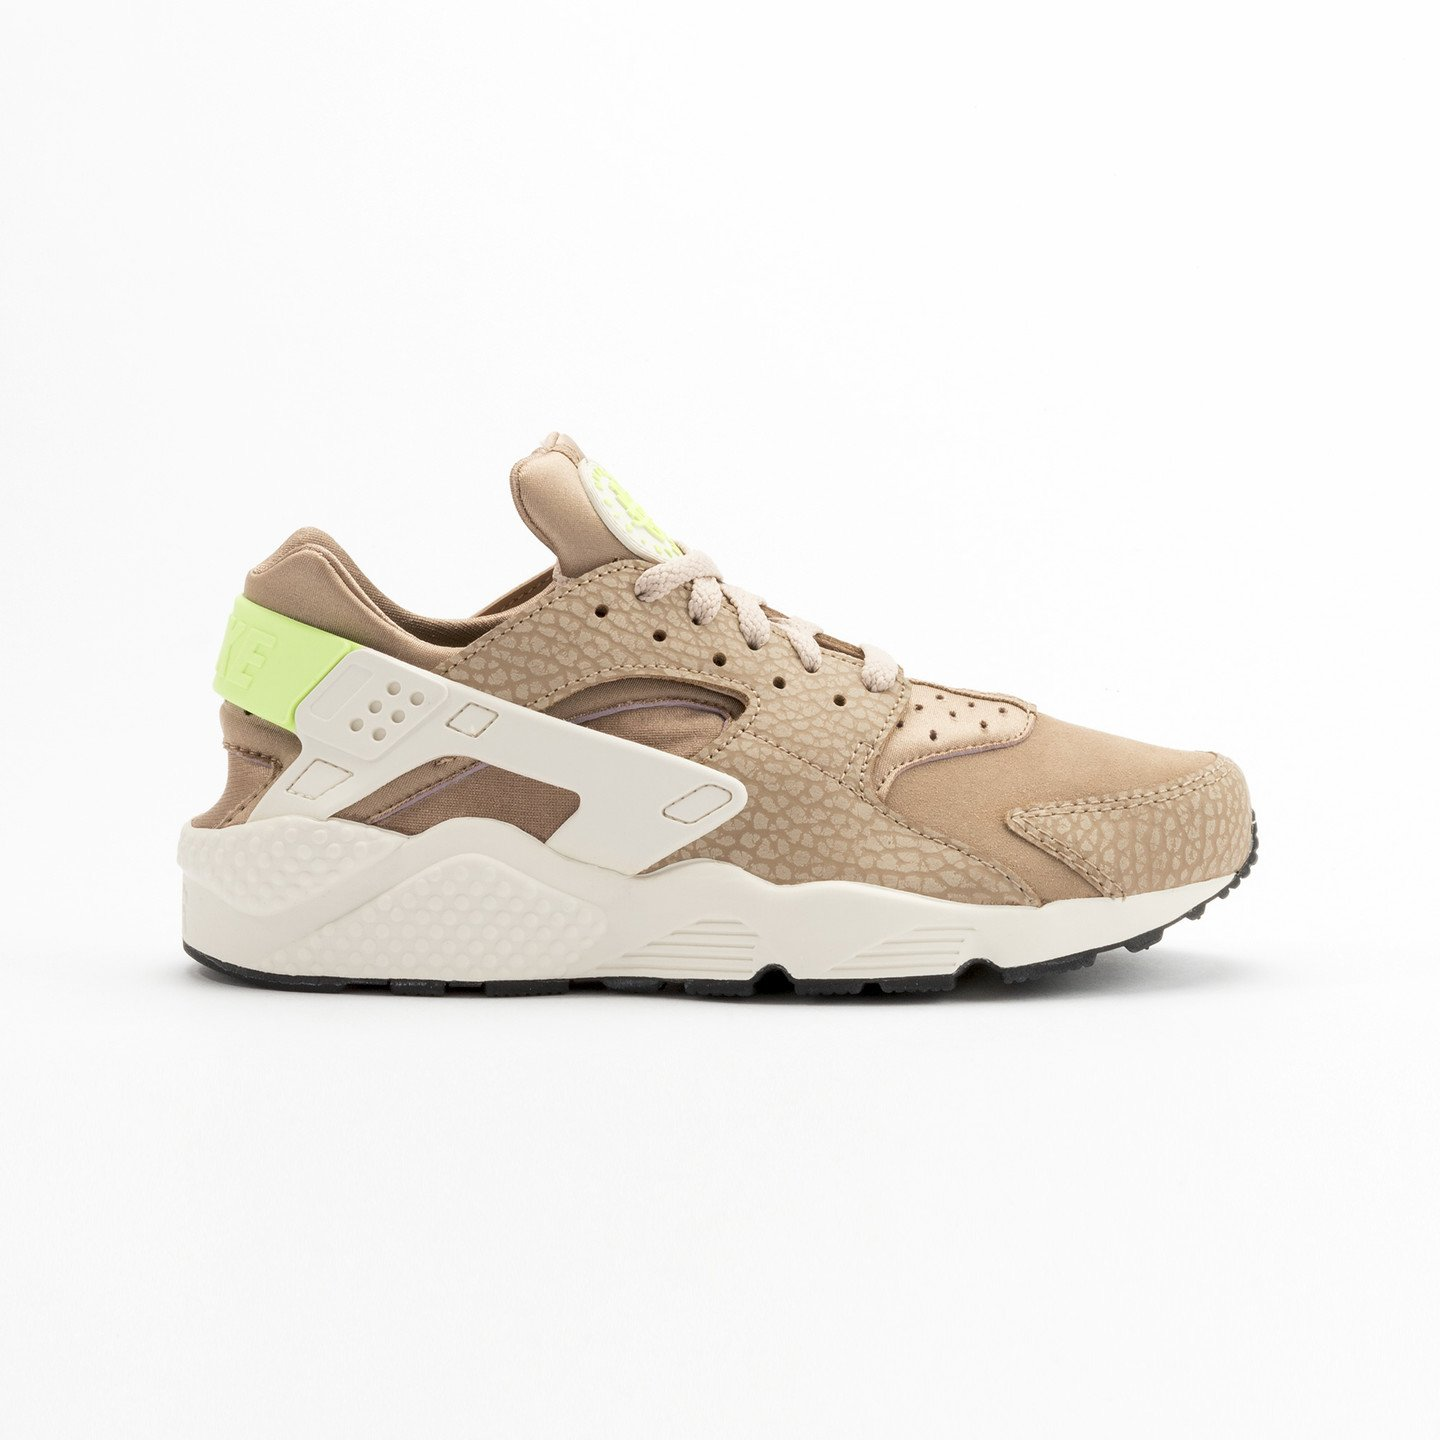 Nike Air Huarache Run Premium Desert Camo / Sea Glass / Ghost Green 704830-203-46